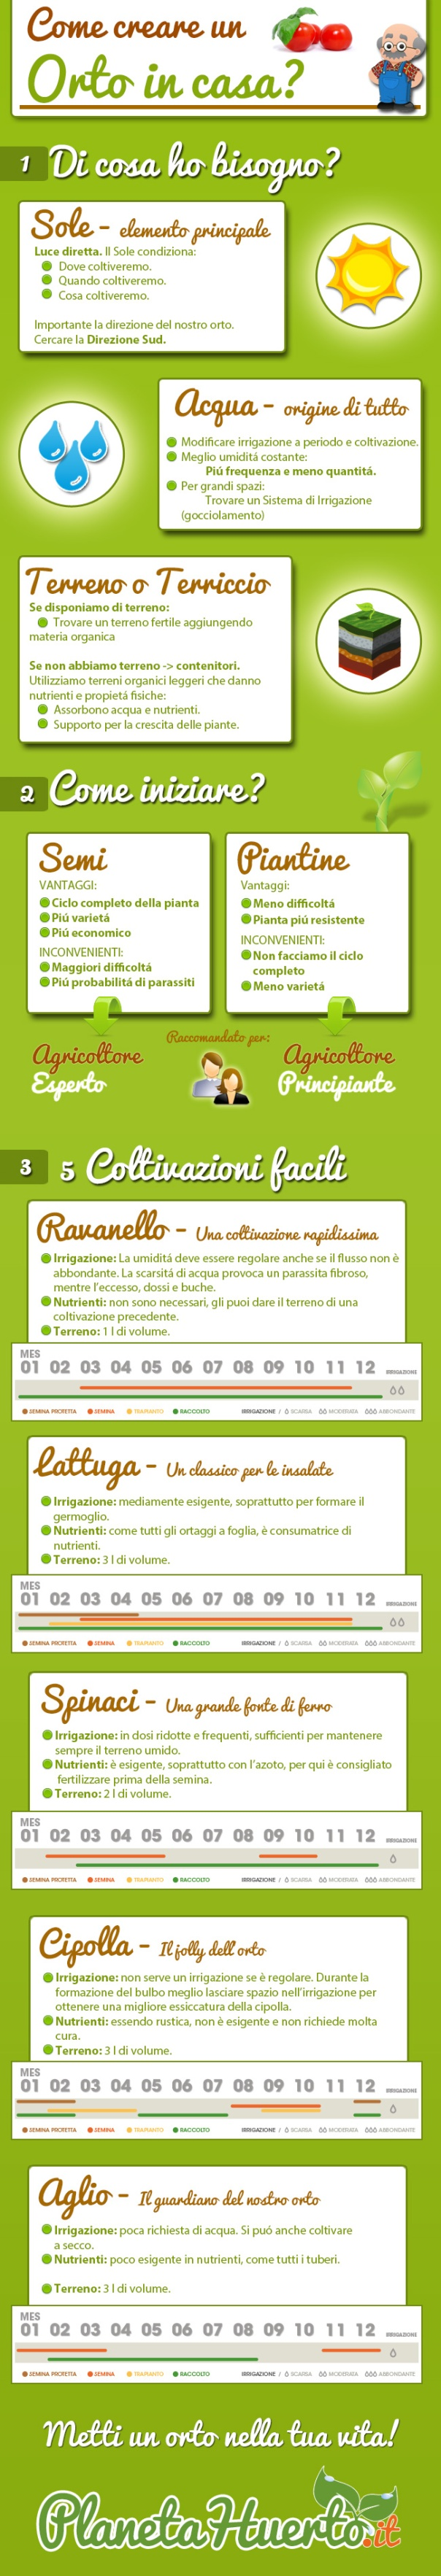 infografia-huerto-IT